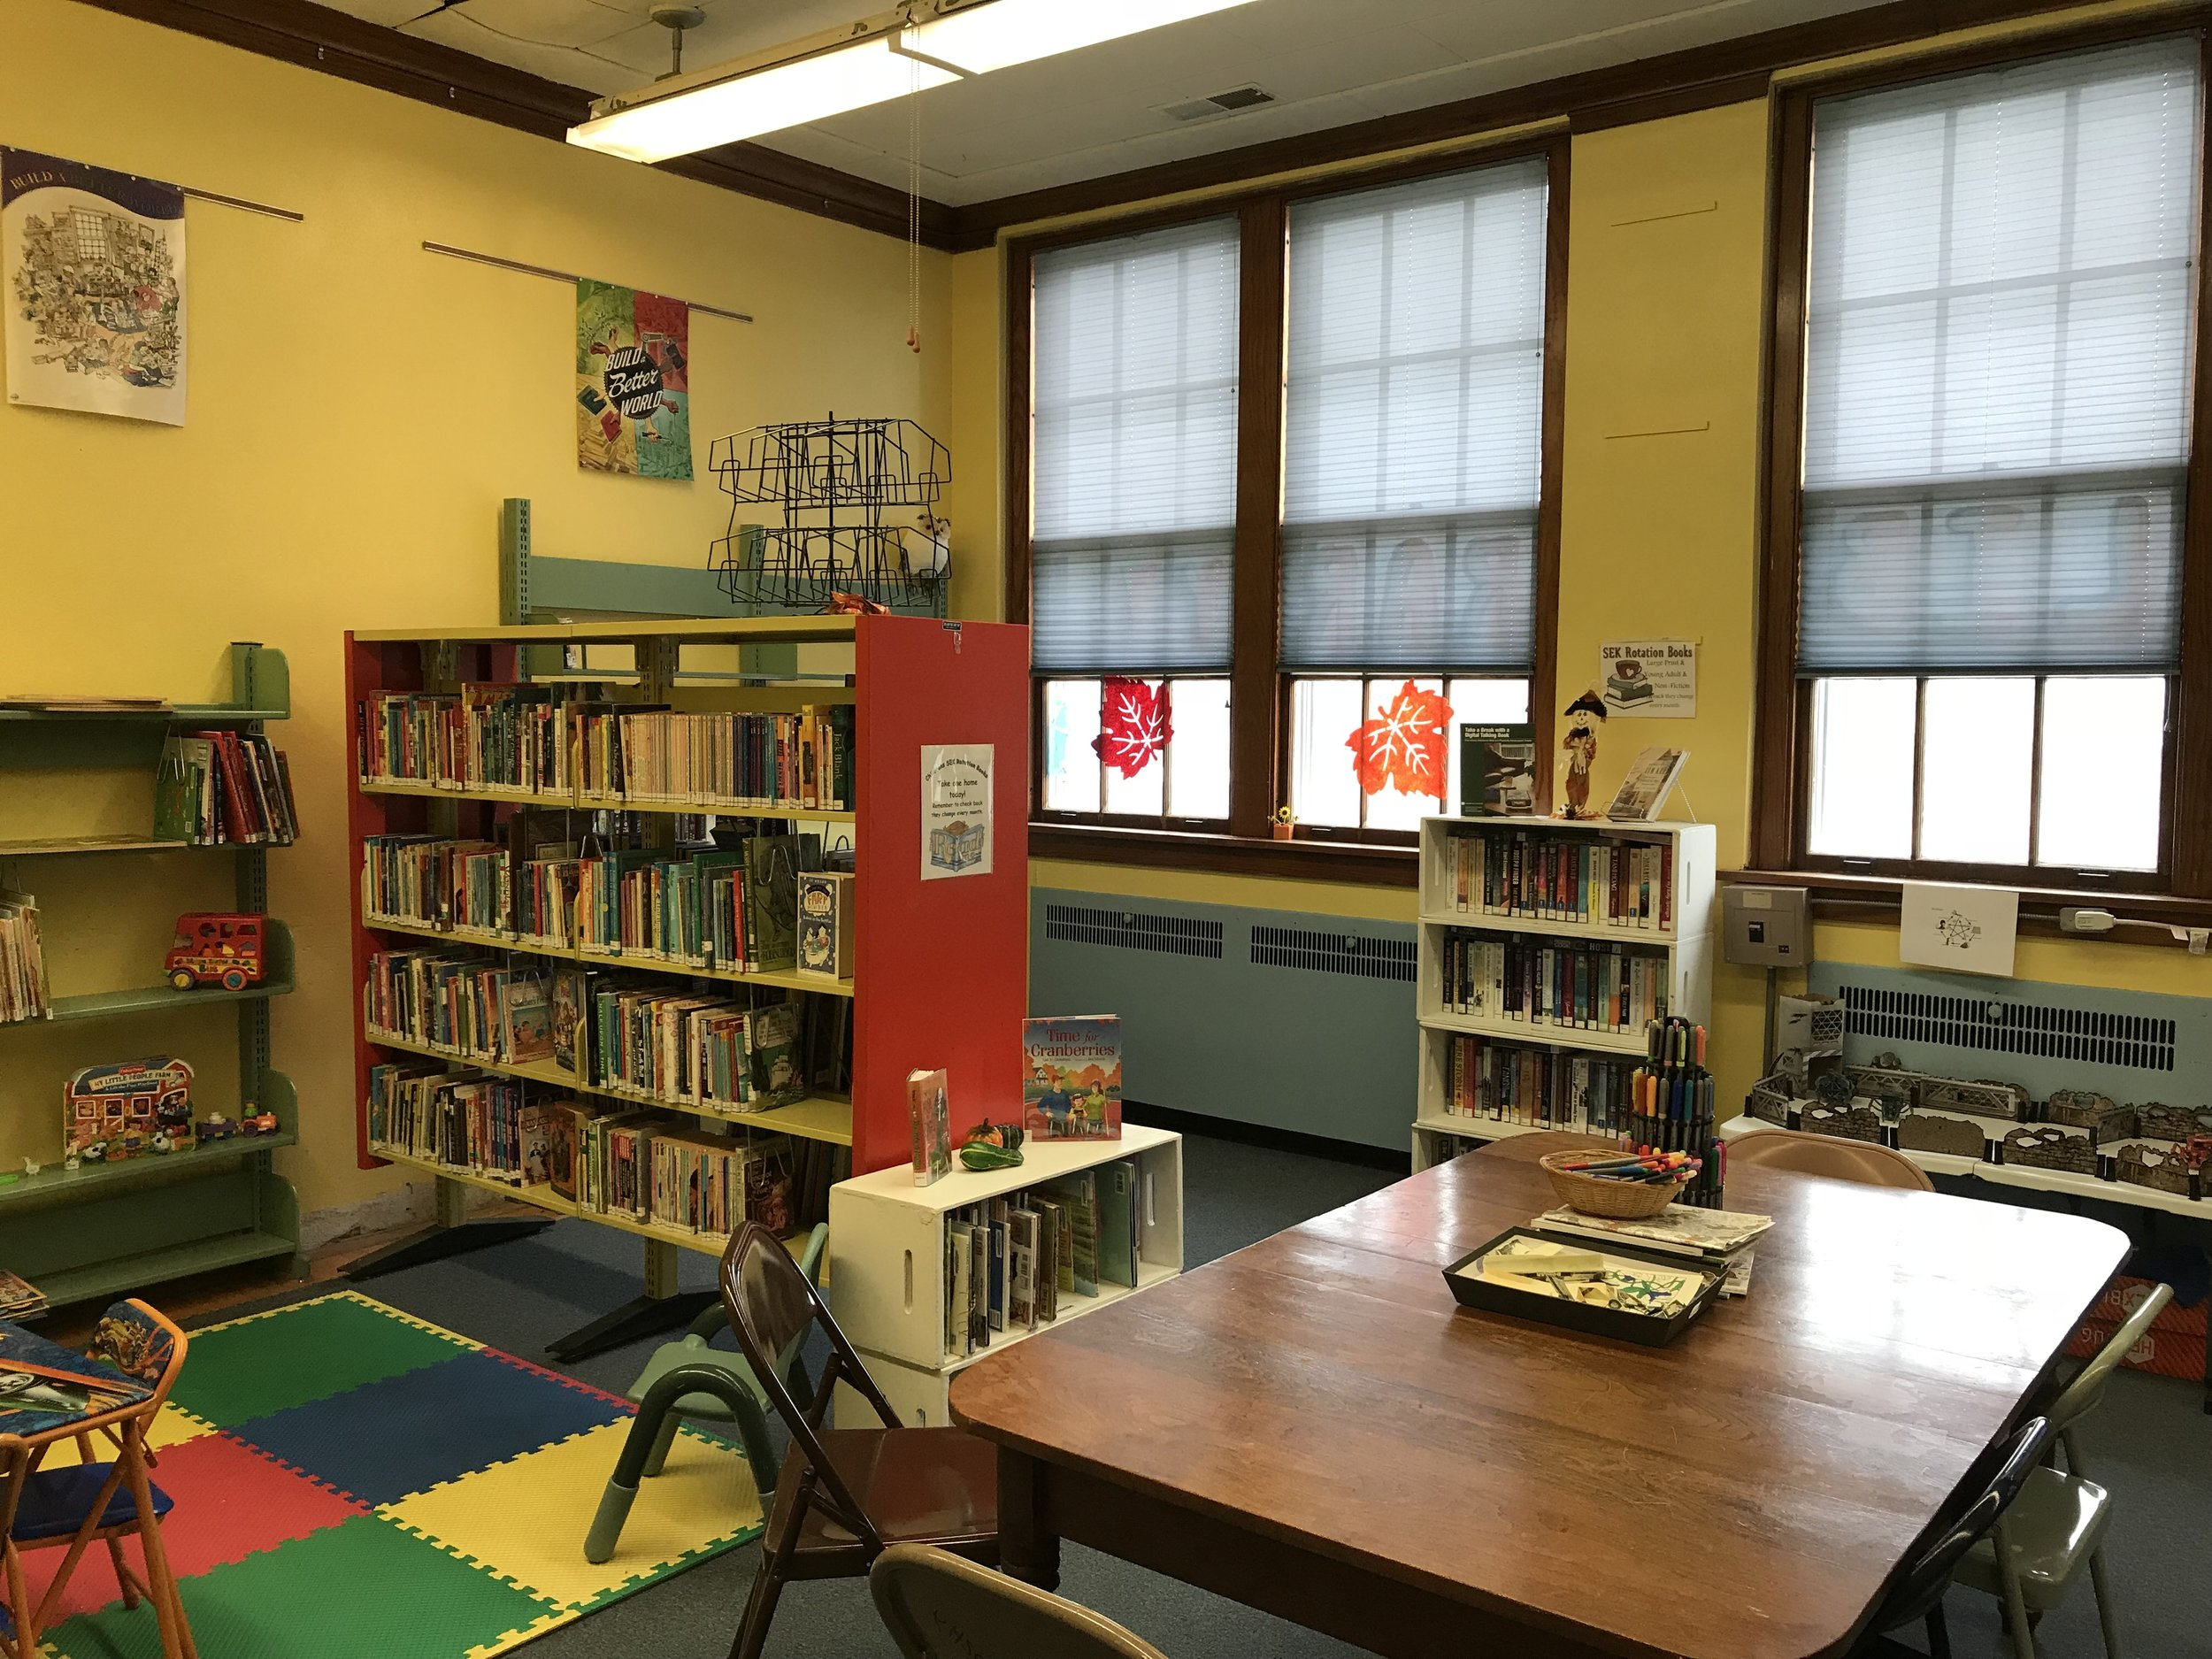 The library serves a population of over 300 with 24/7 Wi-Fi, even though the building is only open 15 hours per week.